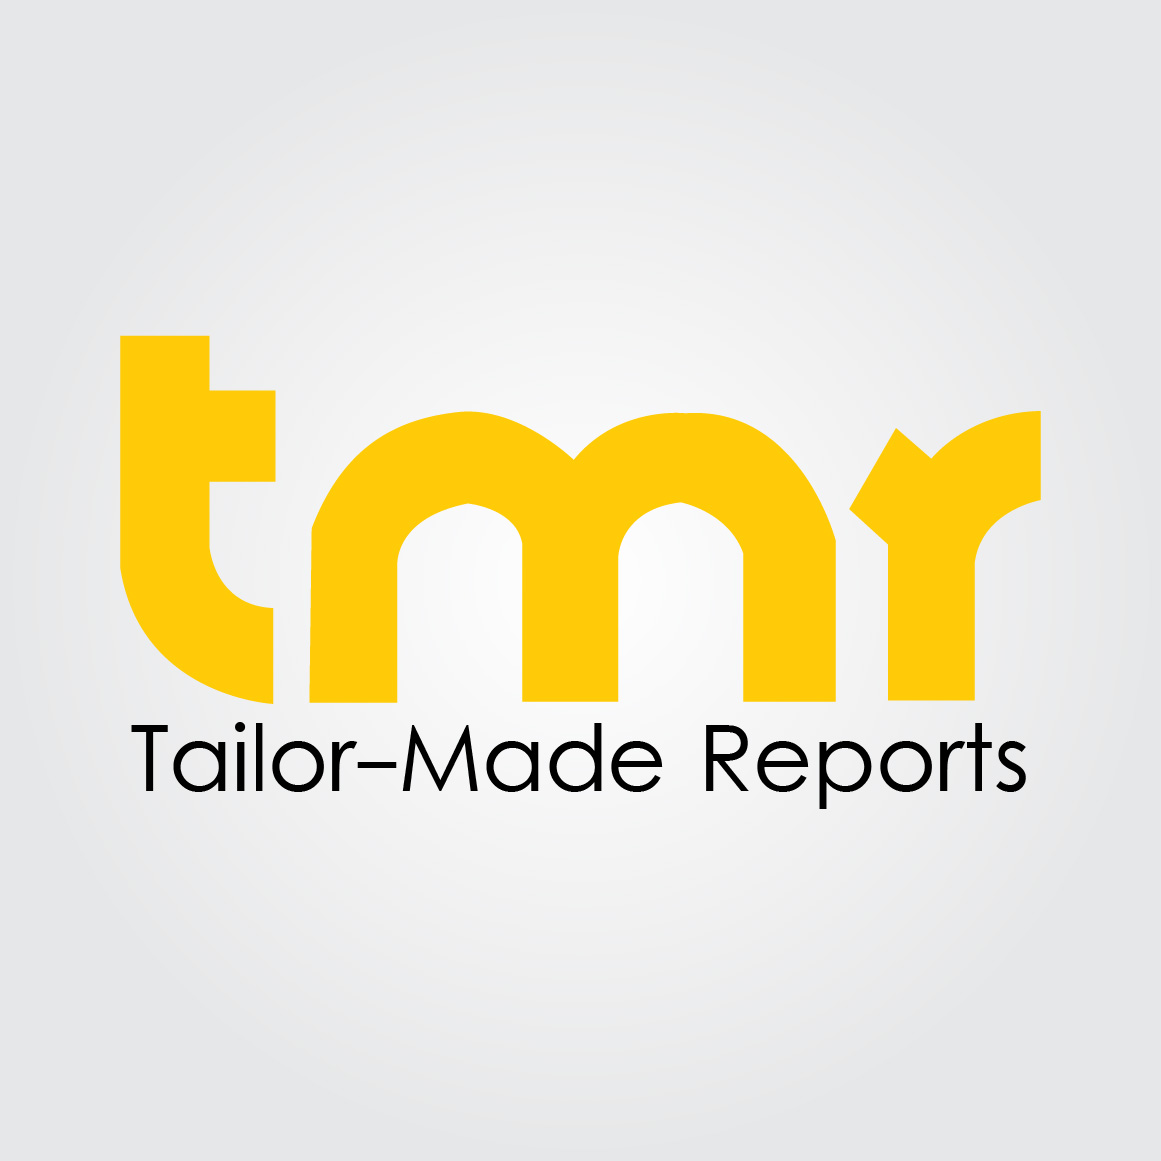 Energy as a Service (EaaS) Market - North America is likely to come up as one of the leading regions | TMR Research Study